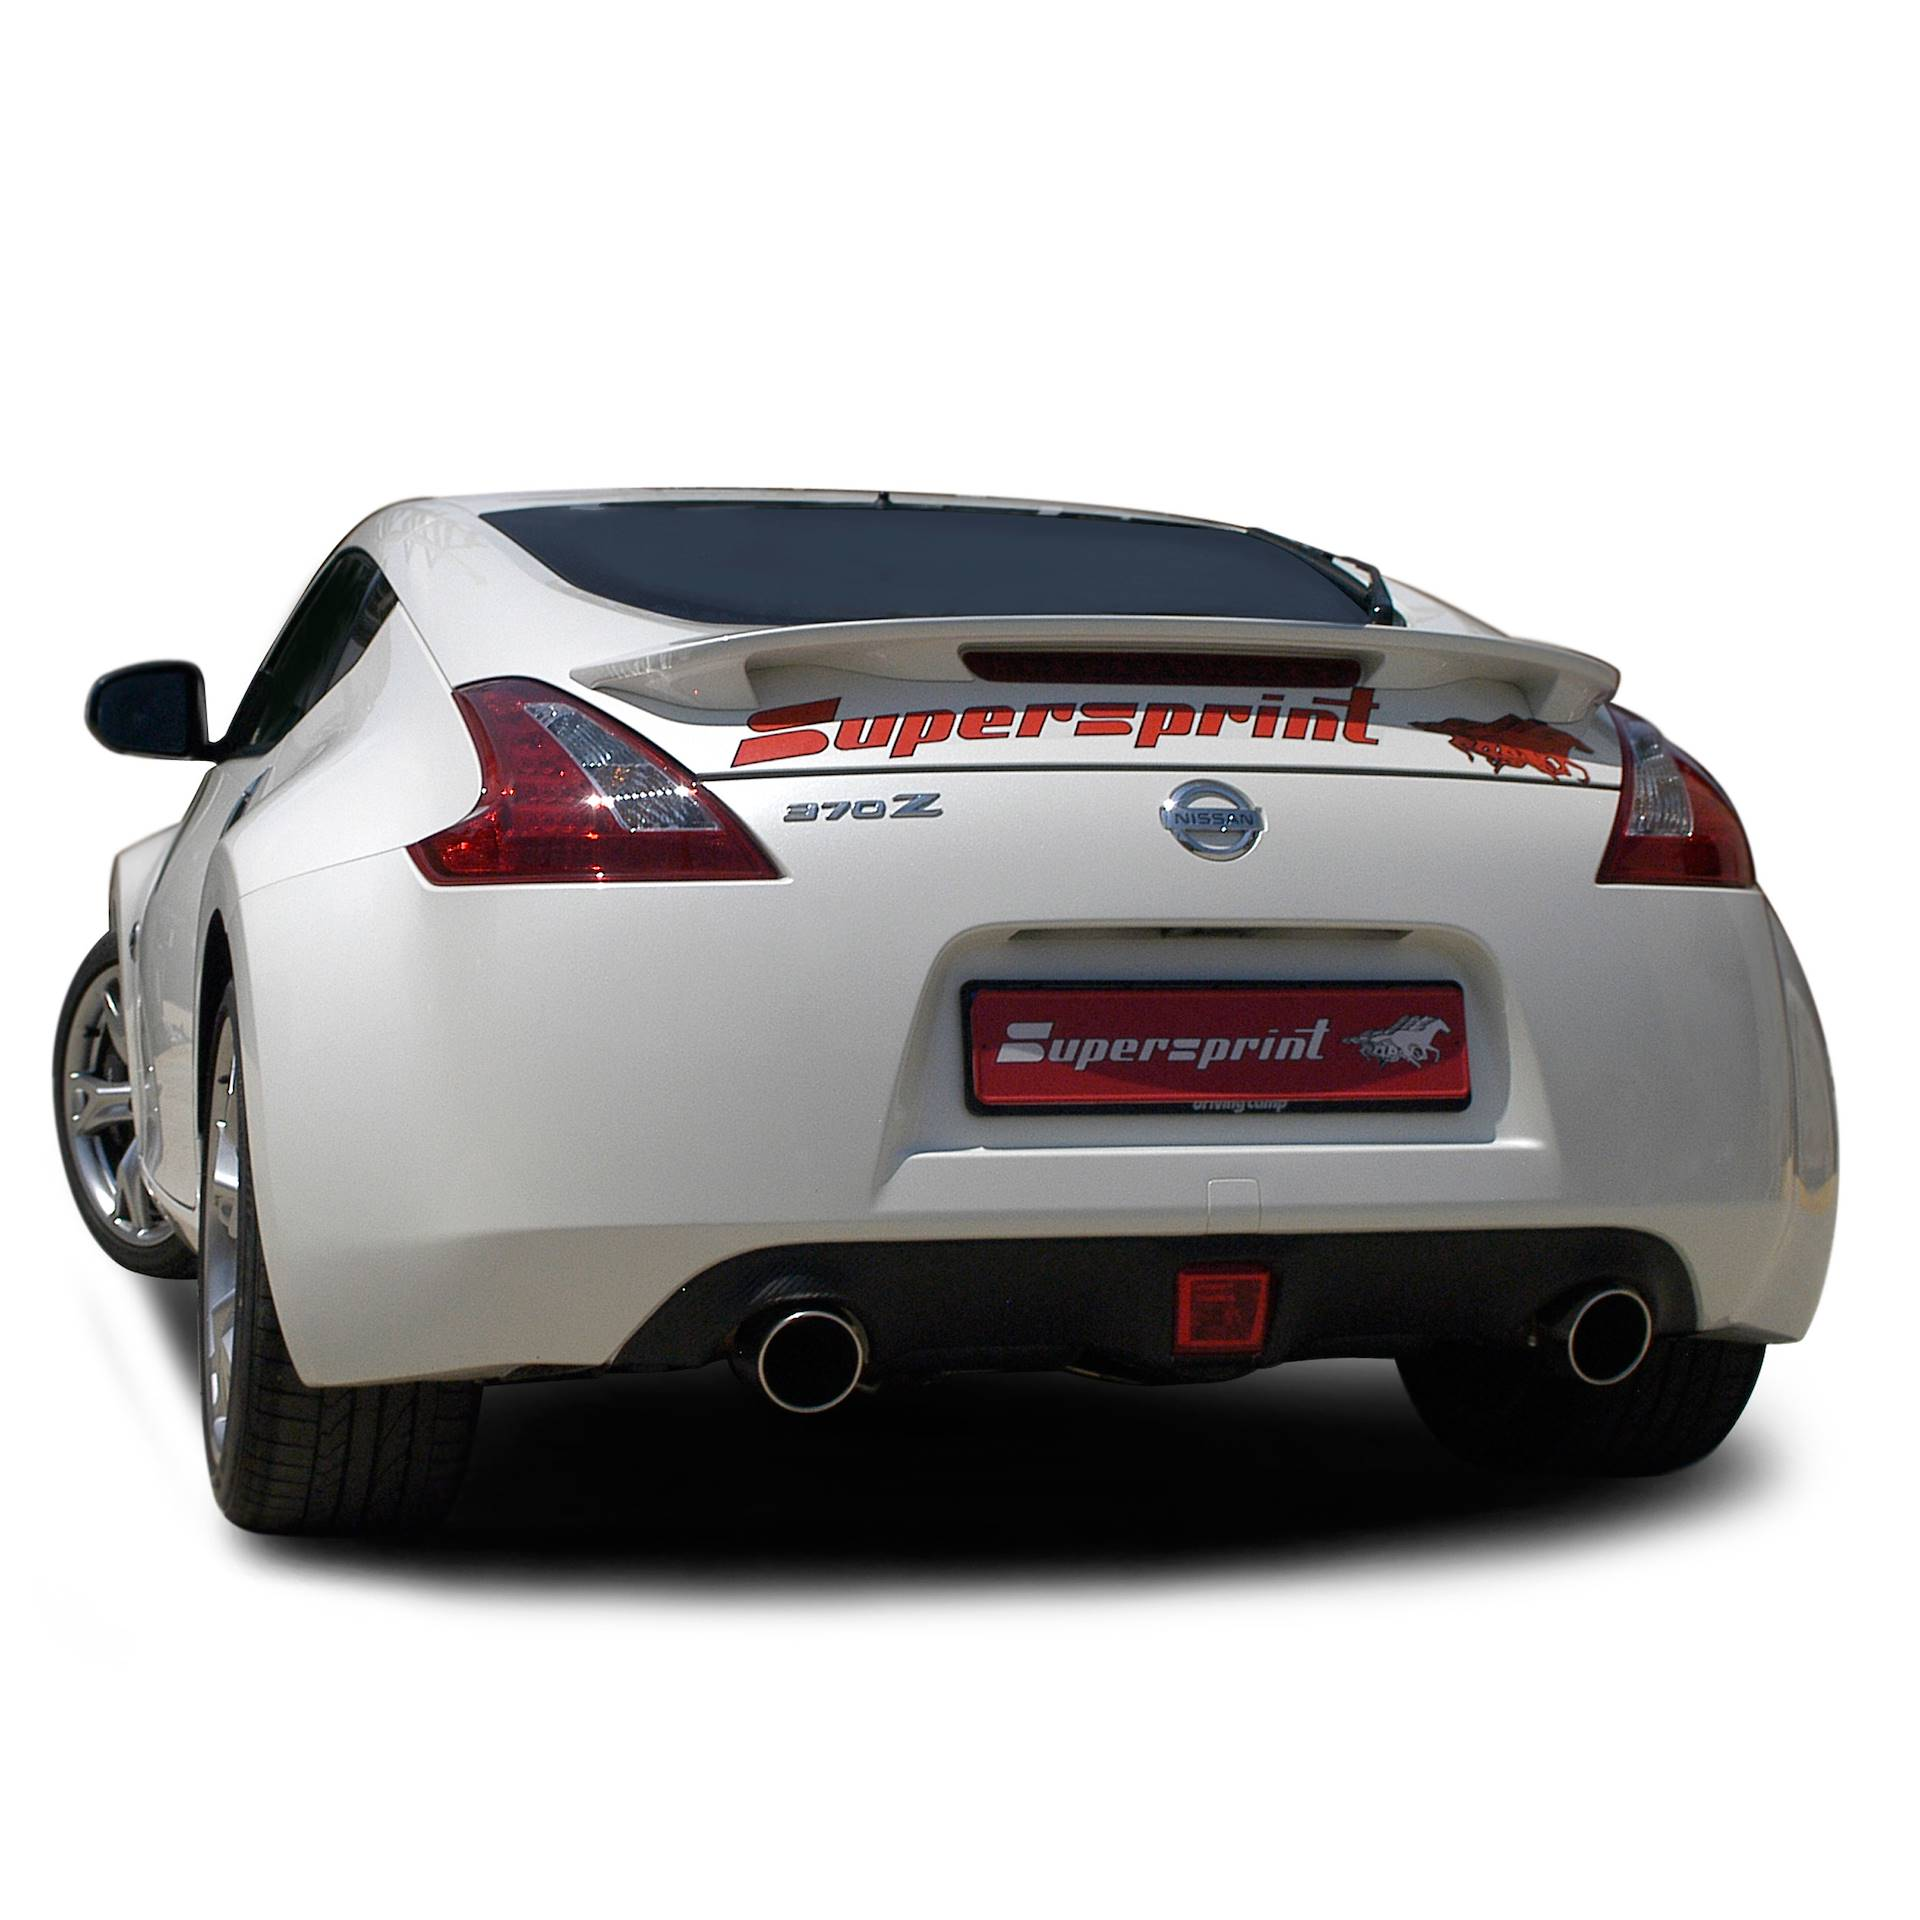 nissan 370z coup cabrio 331 hp 39 09 nissan exhaust systems. Black Bedroom Furniture Sets. Home Design Ideas